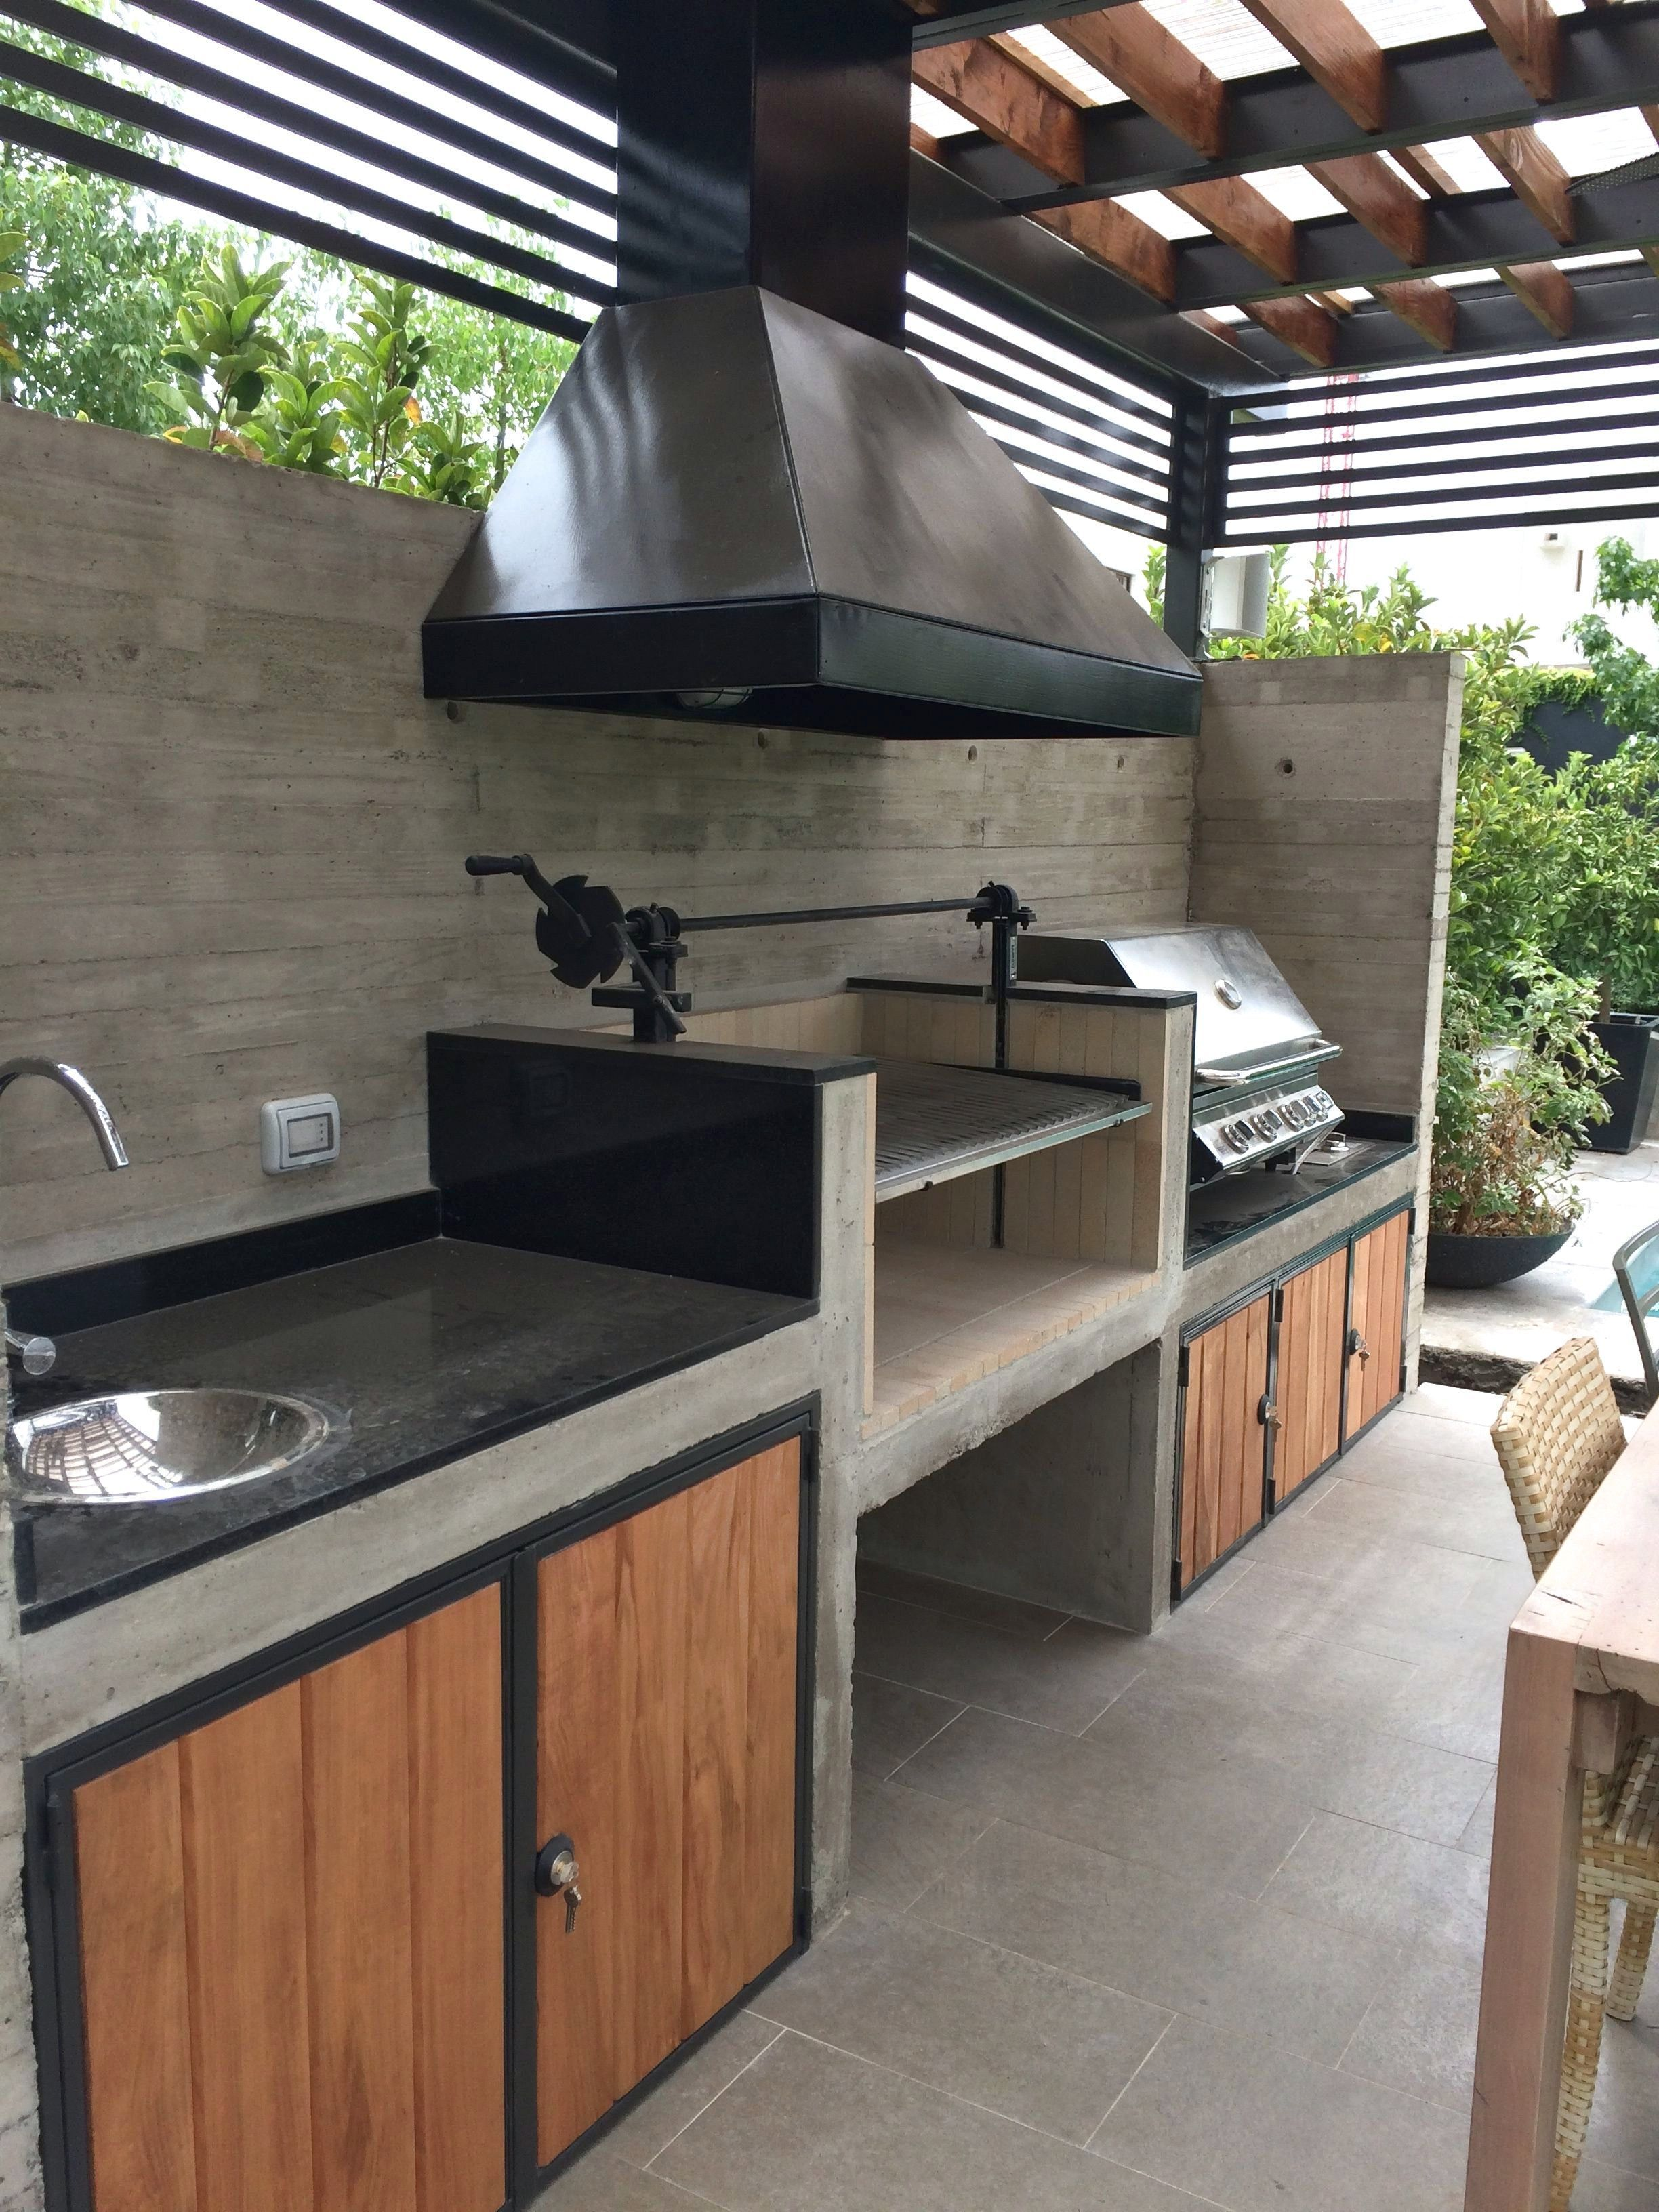 17 Hot Kitchen Remodeling Ideas The Most Liked Cuisine Exterieure Cuisine Exterieure Moderne Cuisine Exterieur